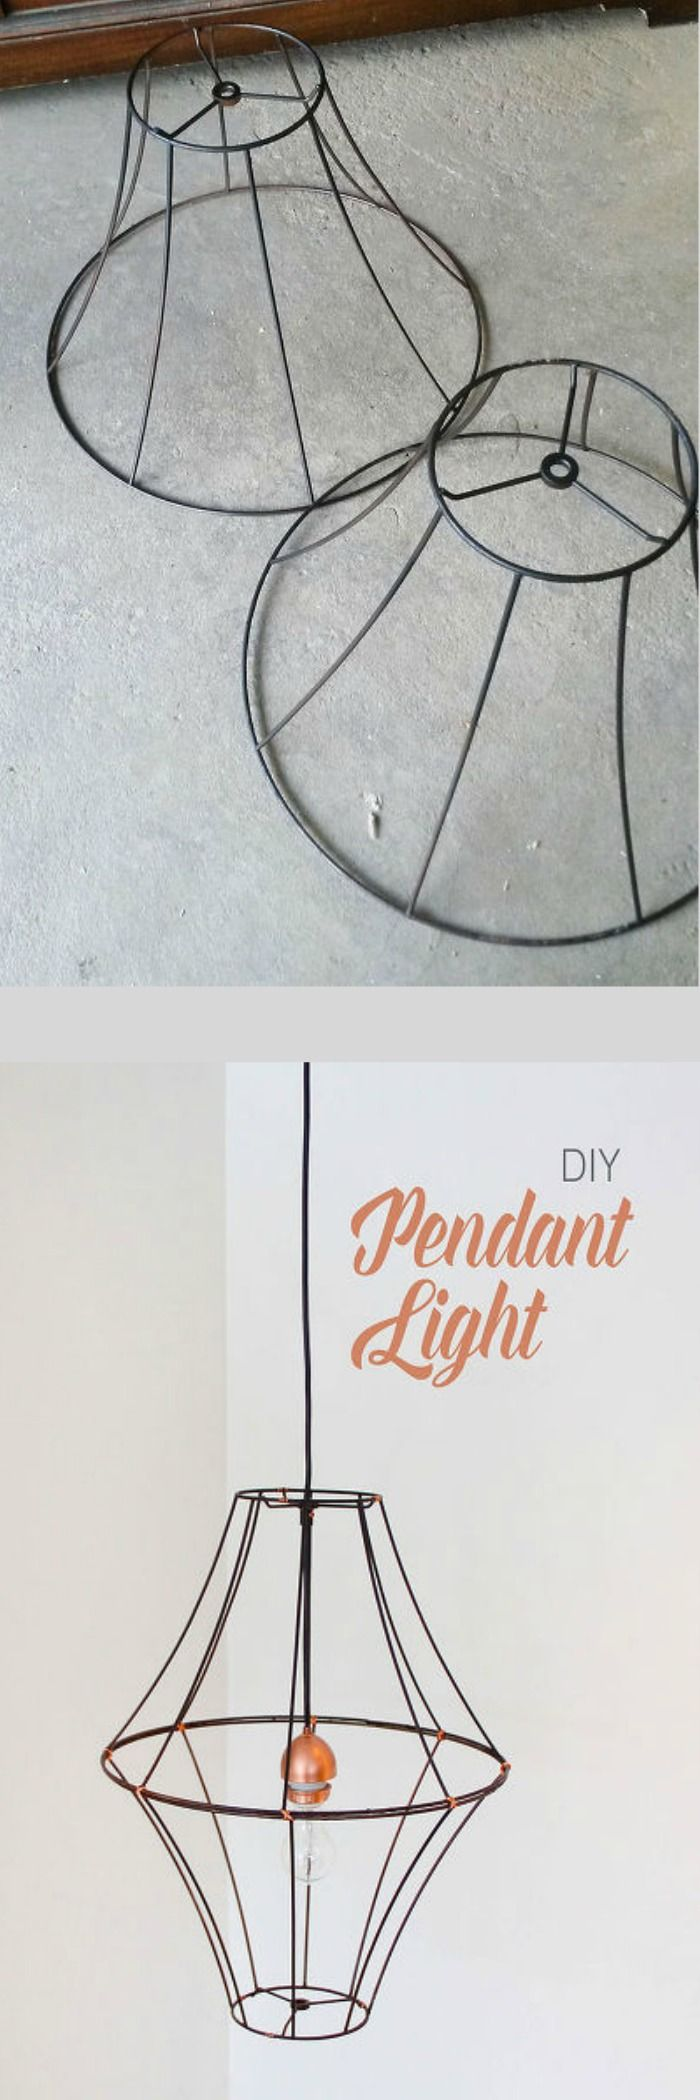 Beautiful and inexpensive DIY Pendant Light - you could add crystals to give it a chandelier look.